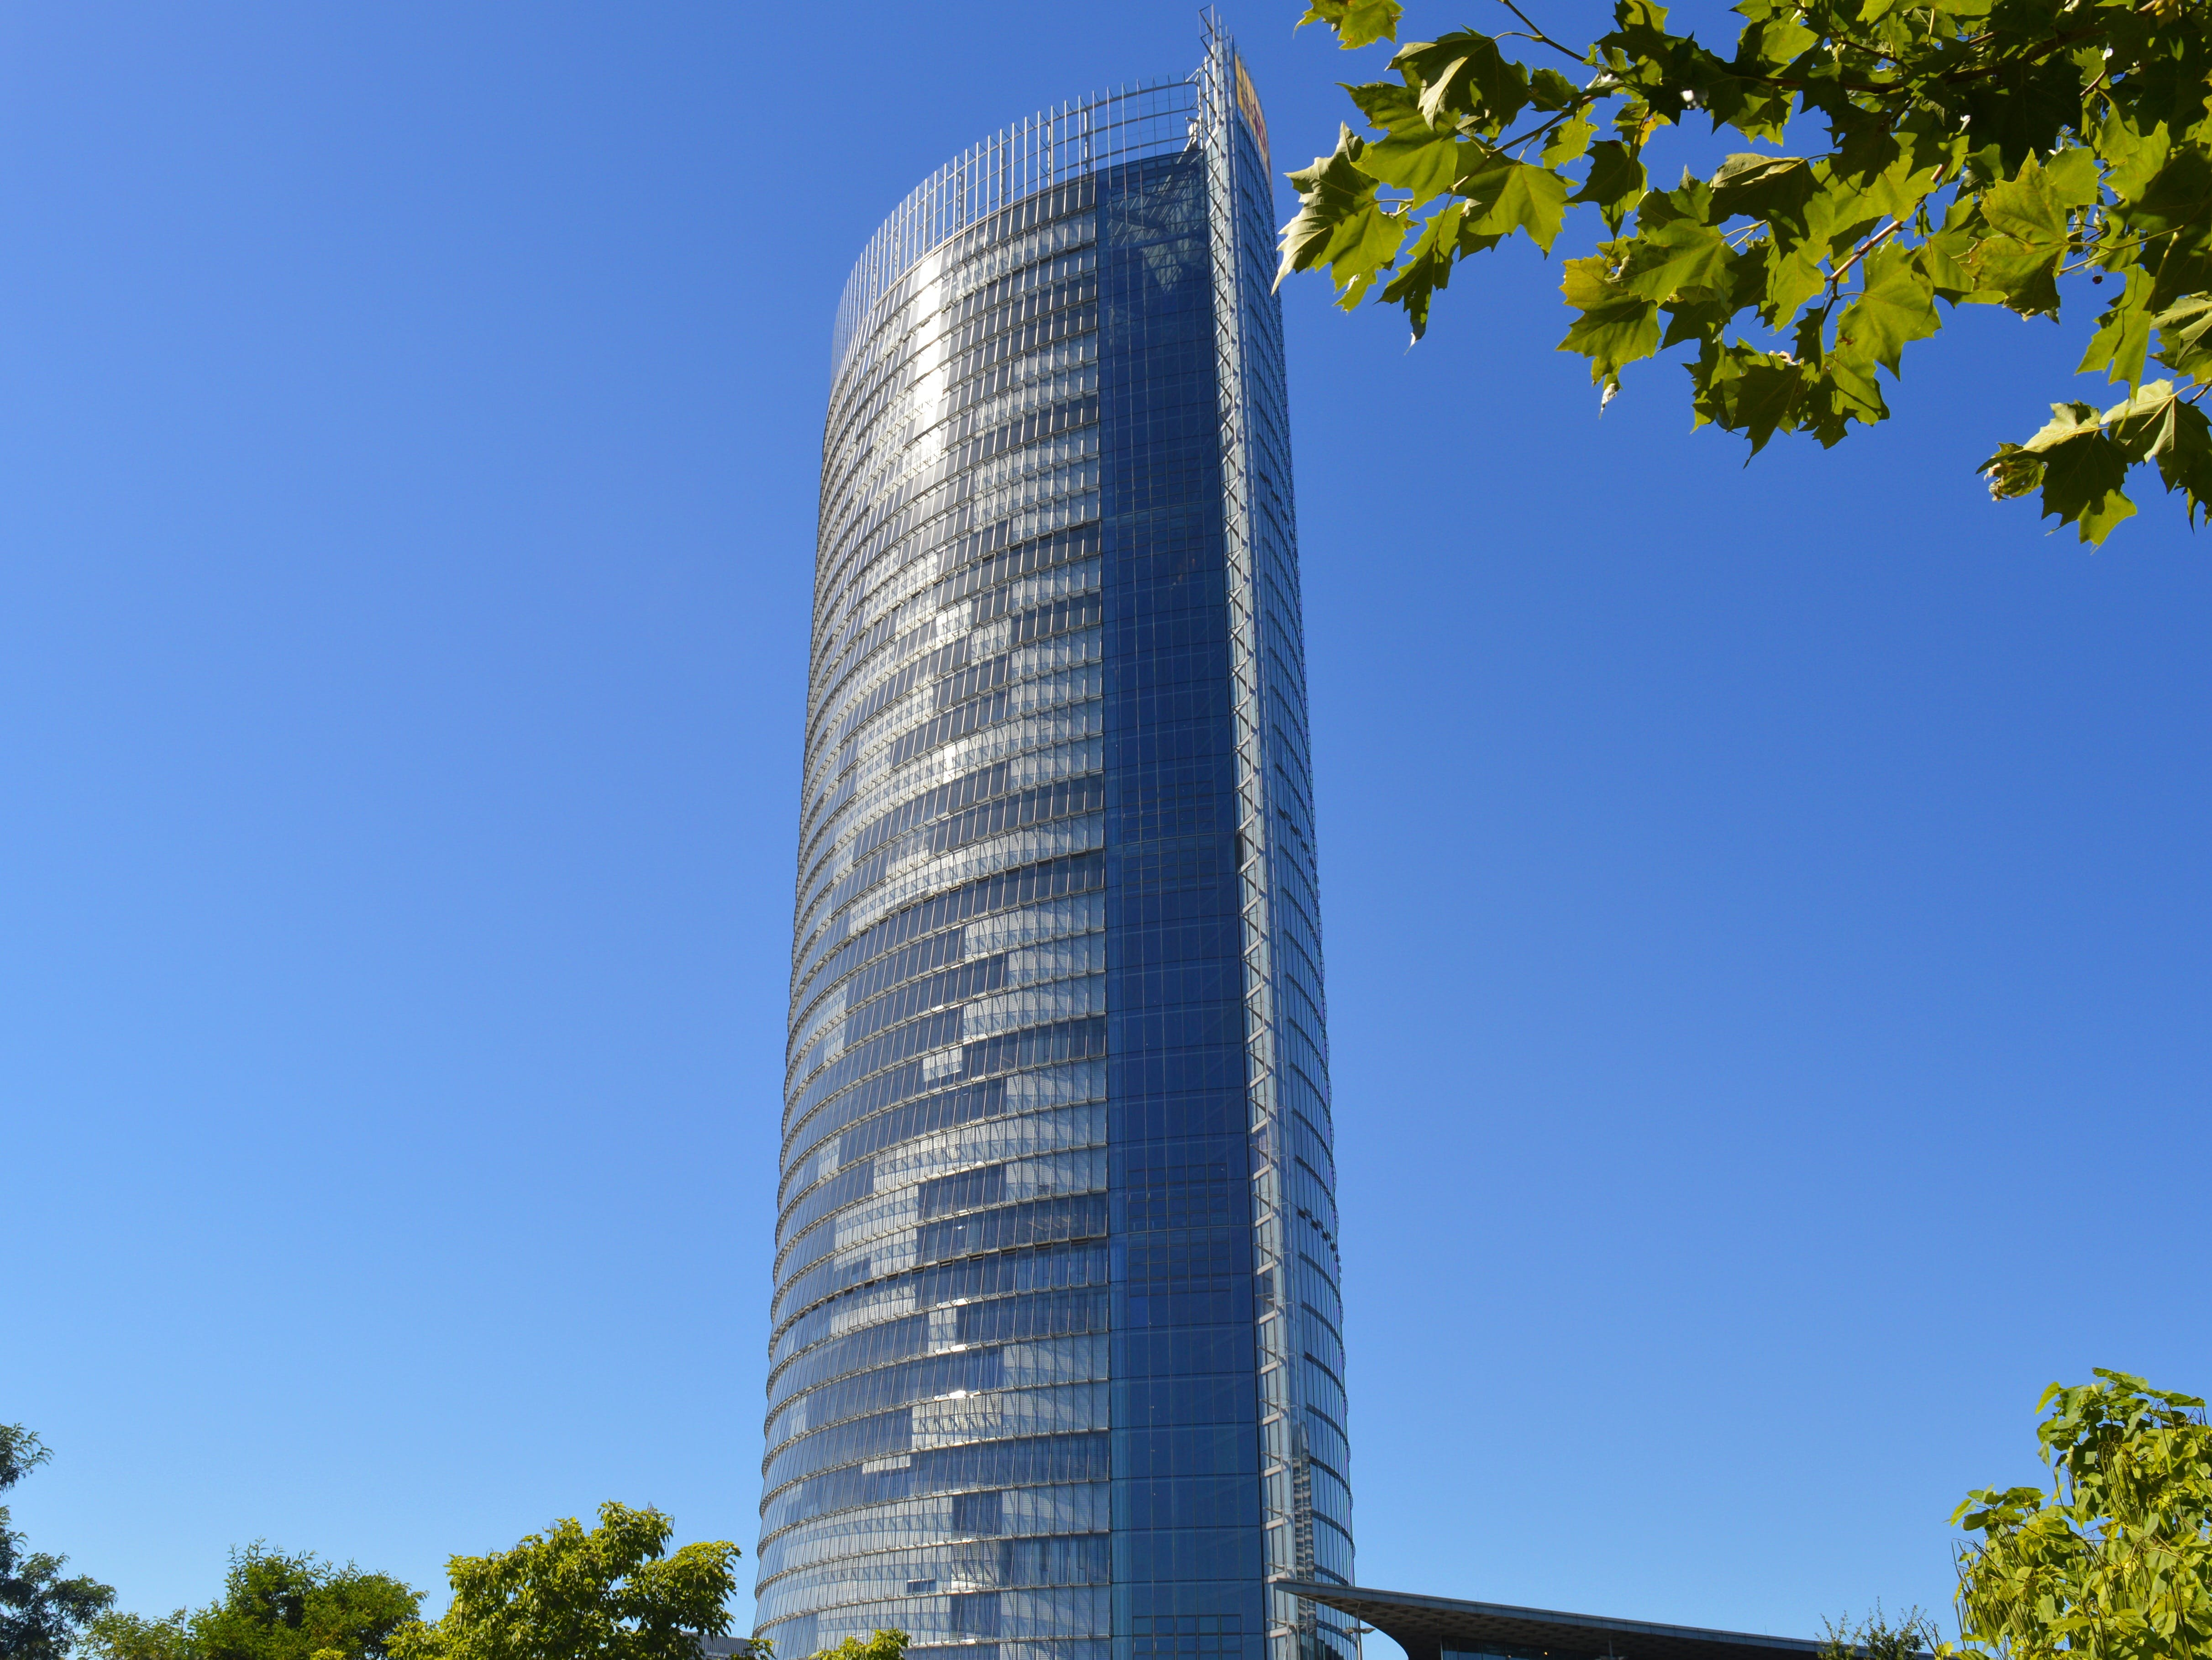 Low Angle Photo of Silver Building